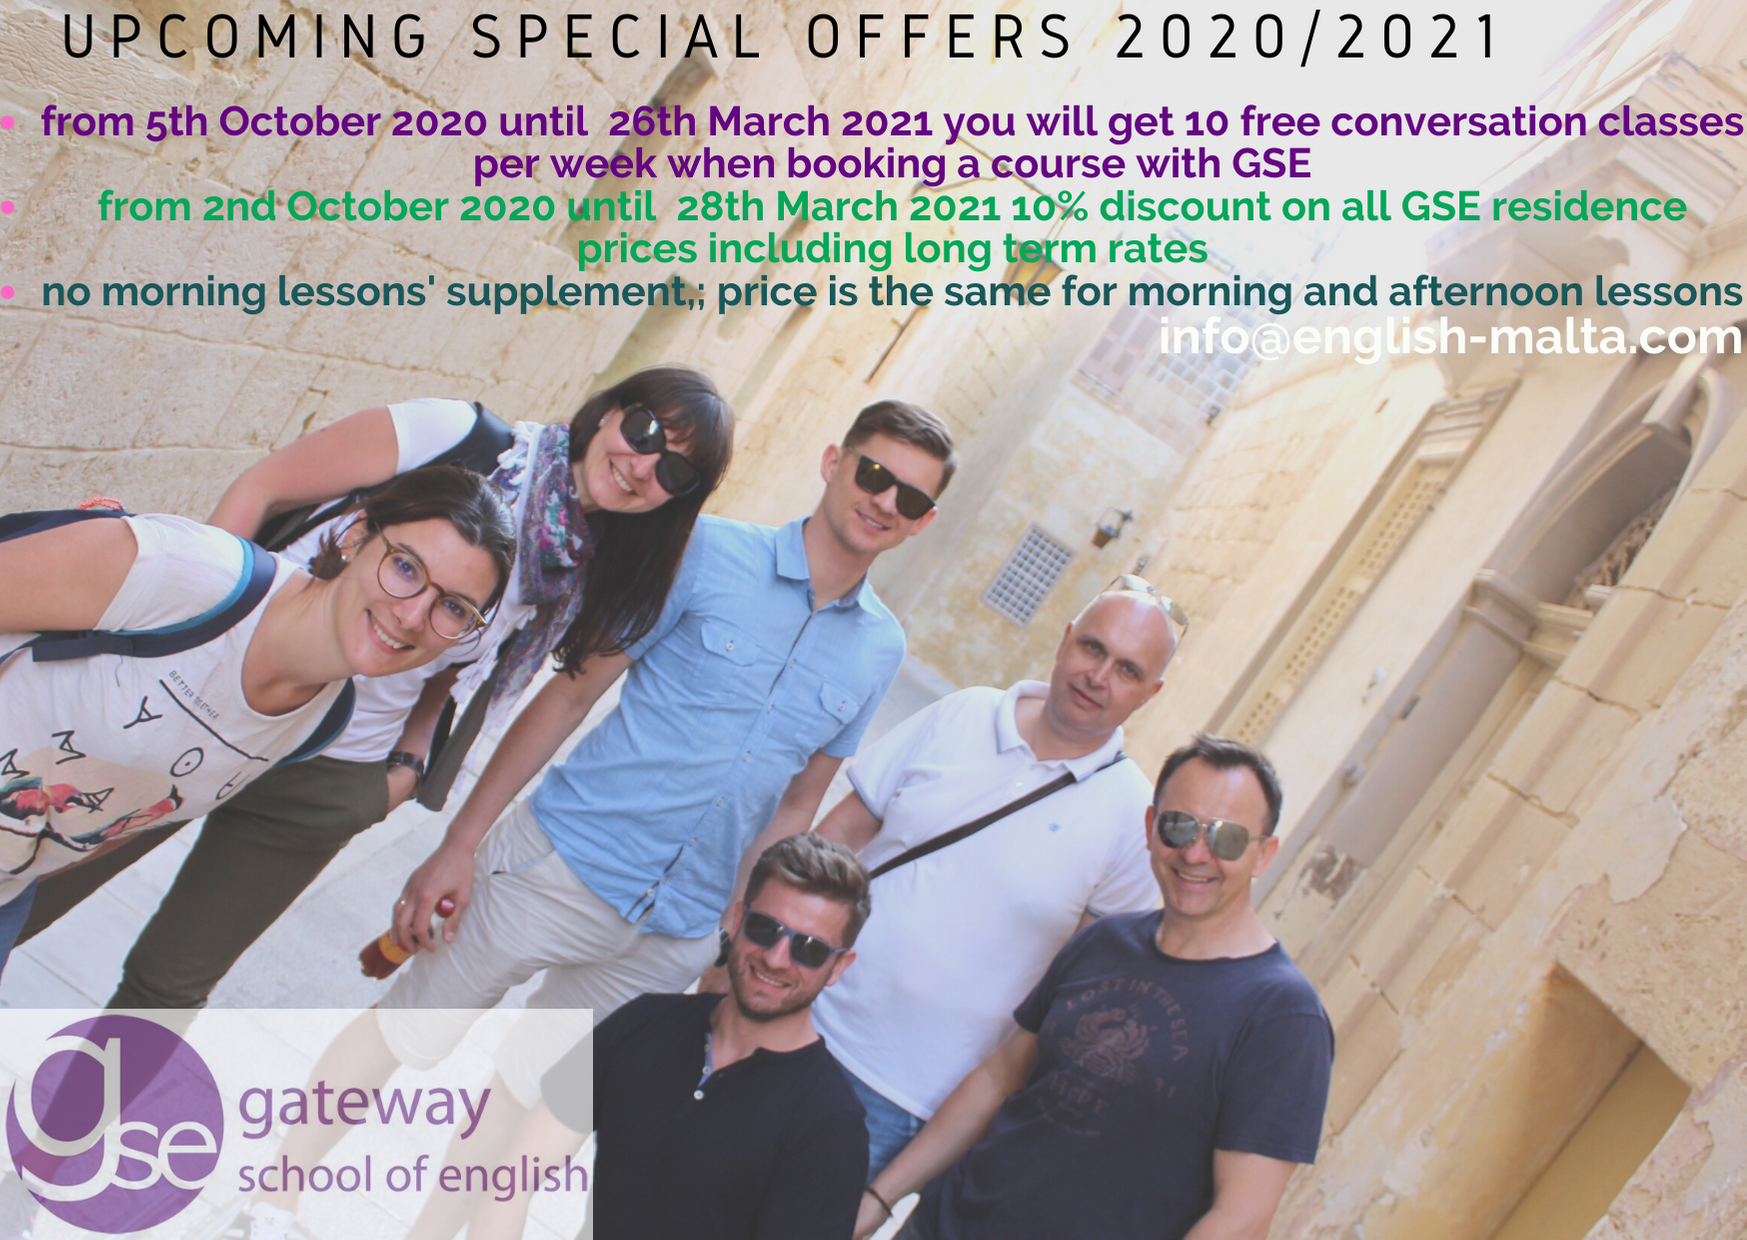 English language school Malta Special price offer on English courses with Gateway School of English GSE